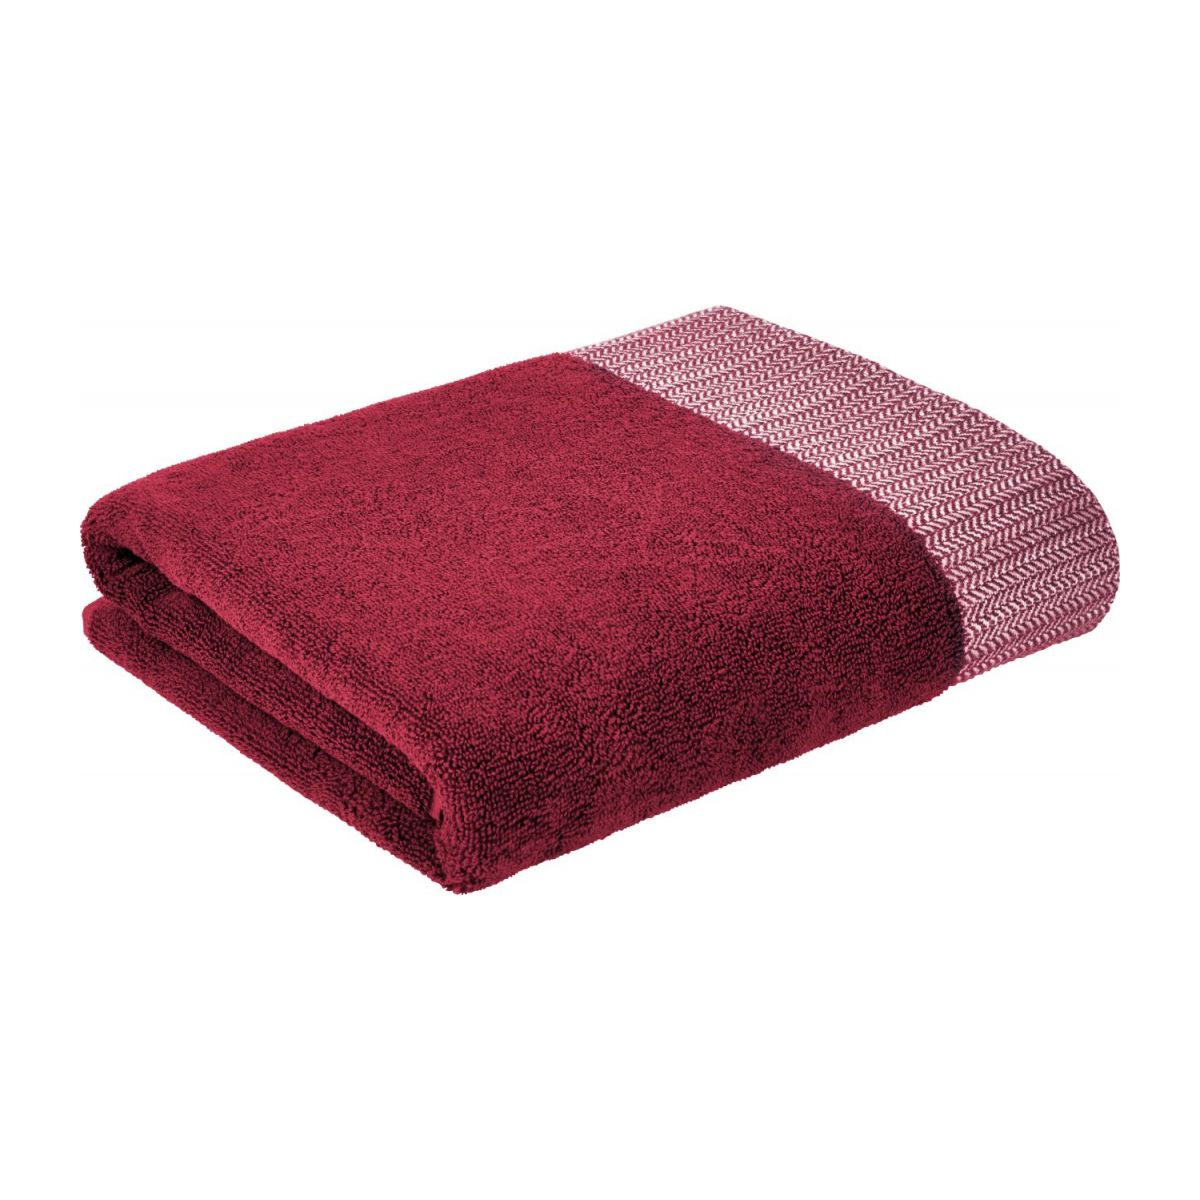 Bath towel made of cotton 70x140, red n°1